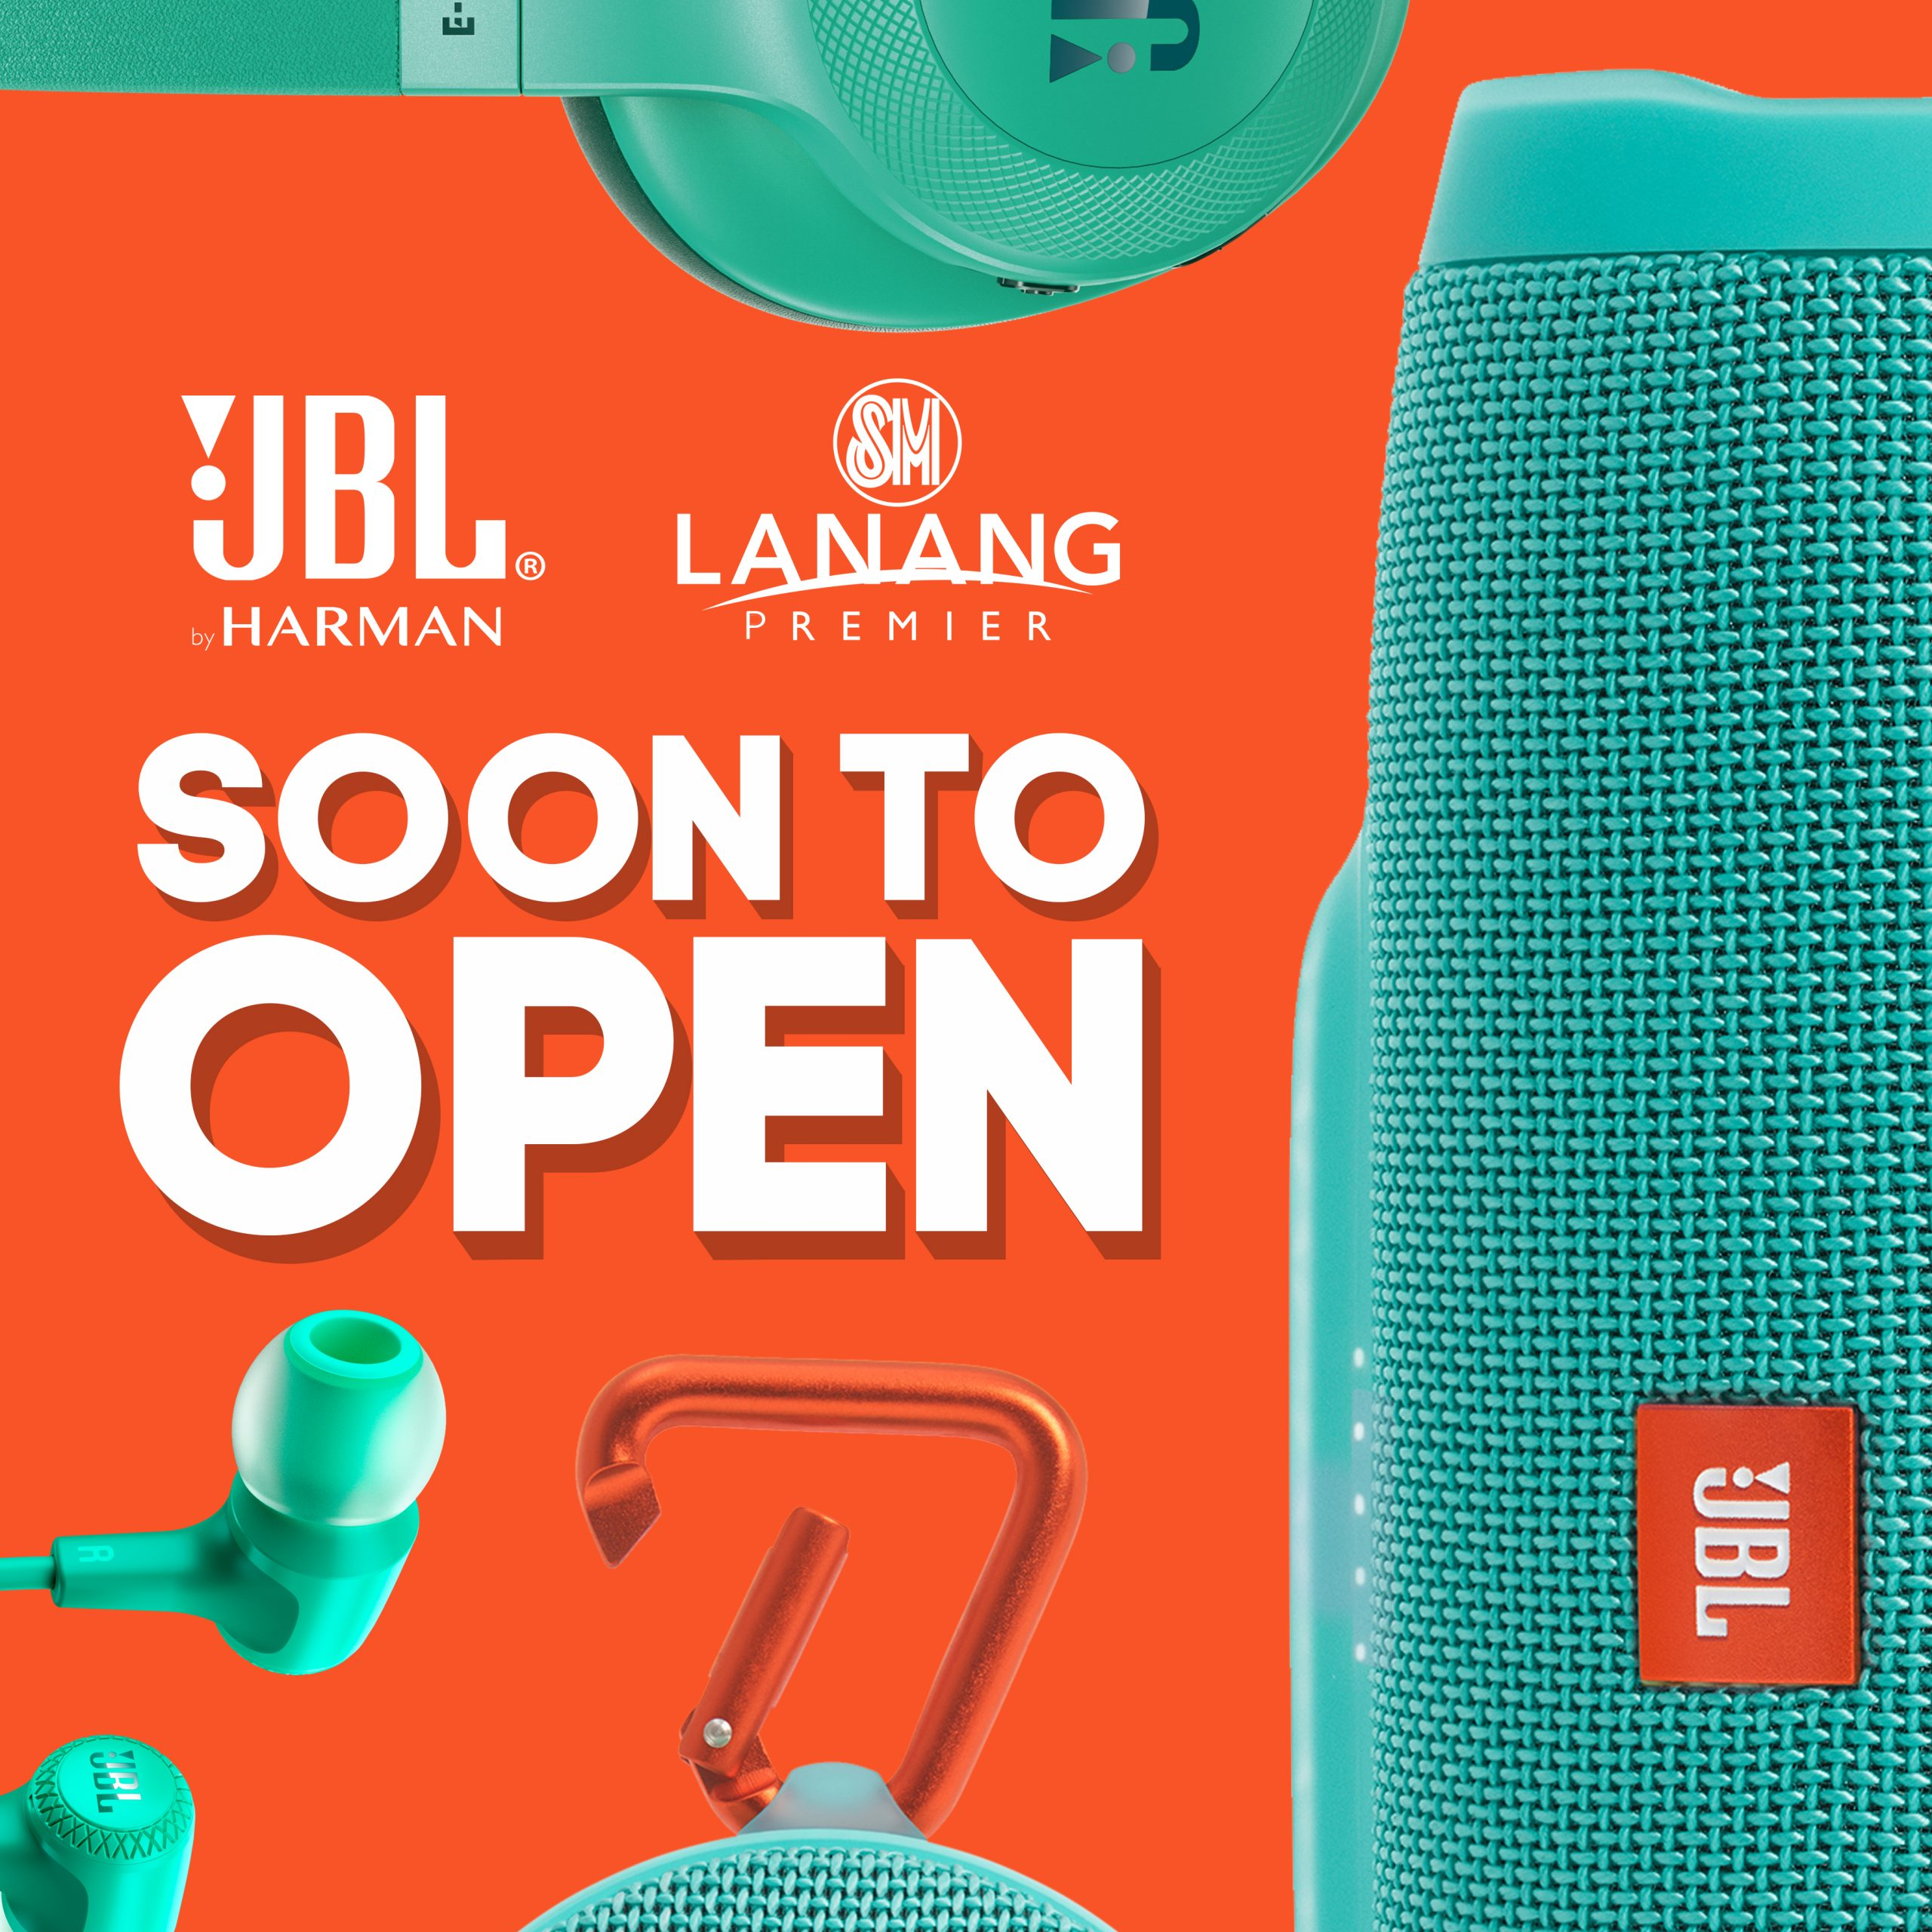 JBL Flagship Store SM Lanang Premier - Directory of Wedding Gifts Suppliers in Davao Del Sur